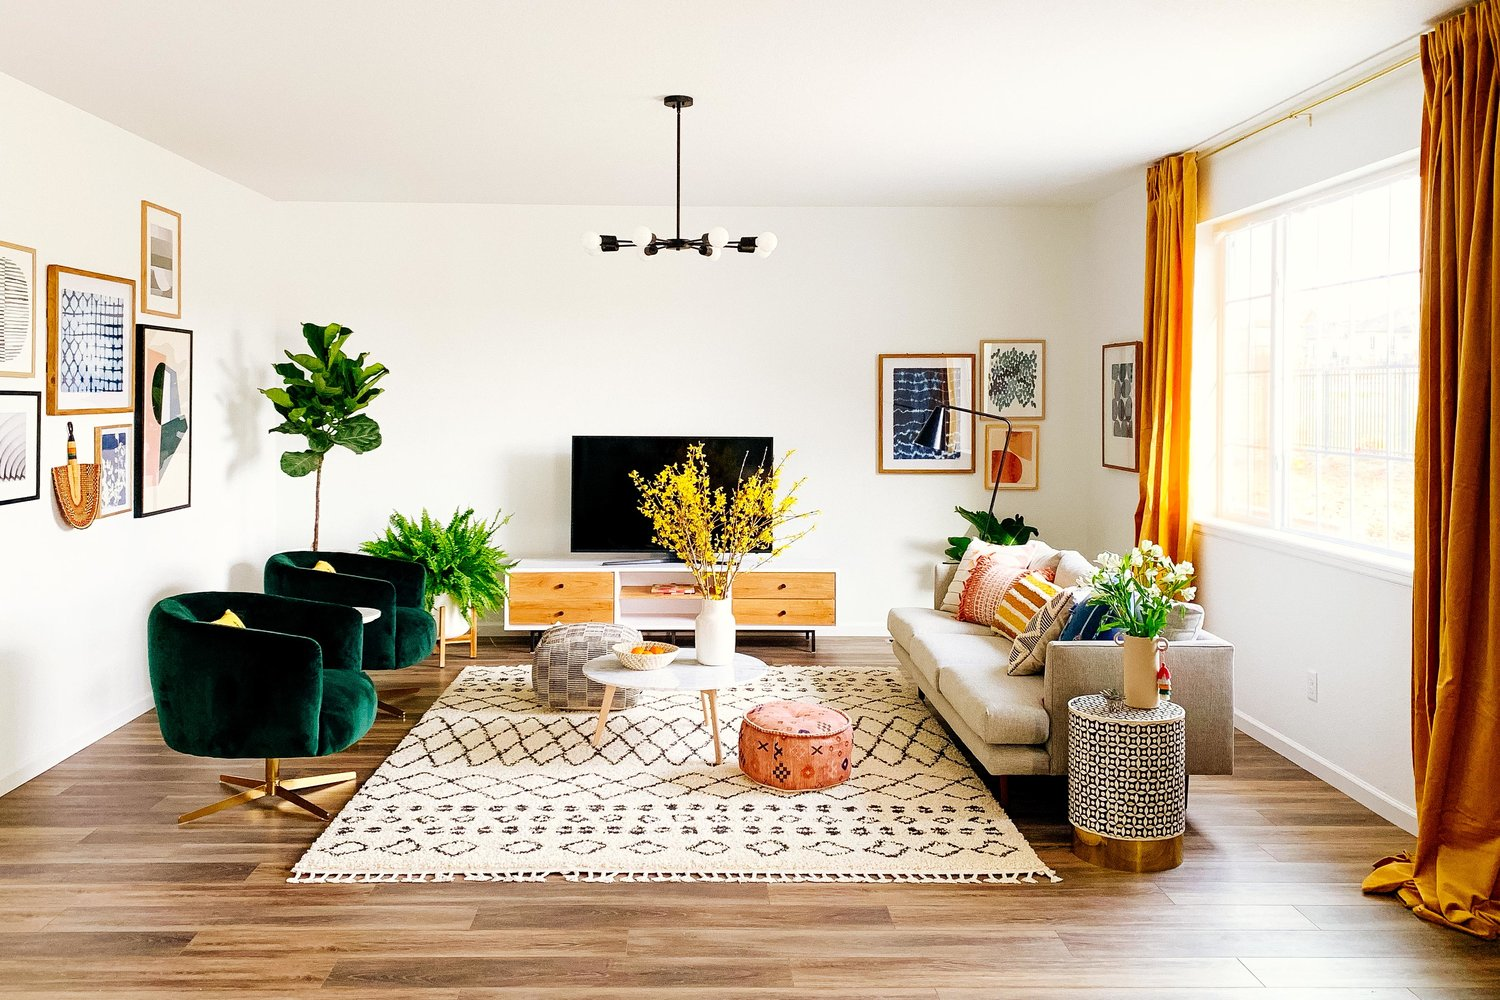 Living Room Lighting Ideas That Make the Case for Boho Style (As If You Needed Any Proof)